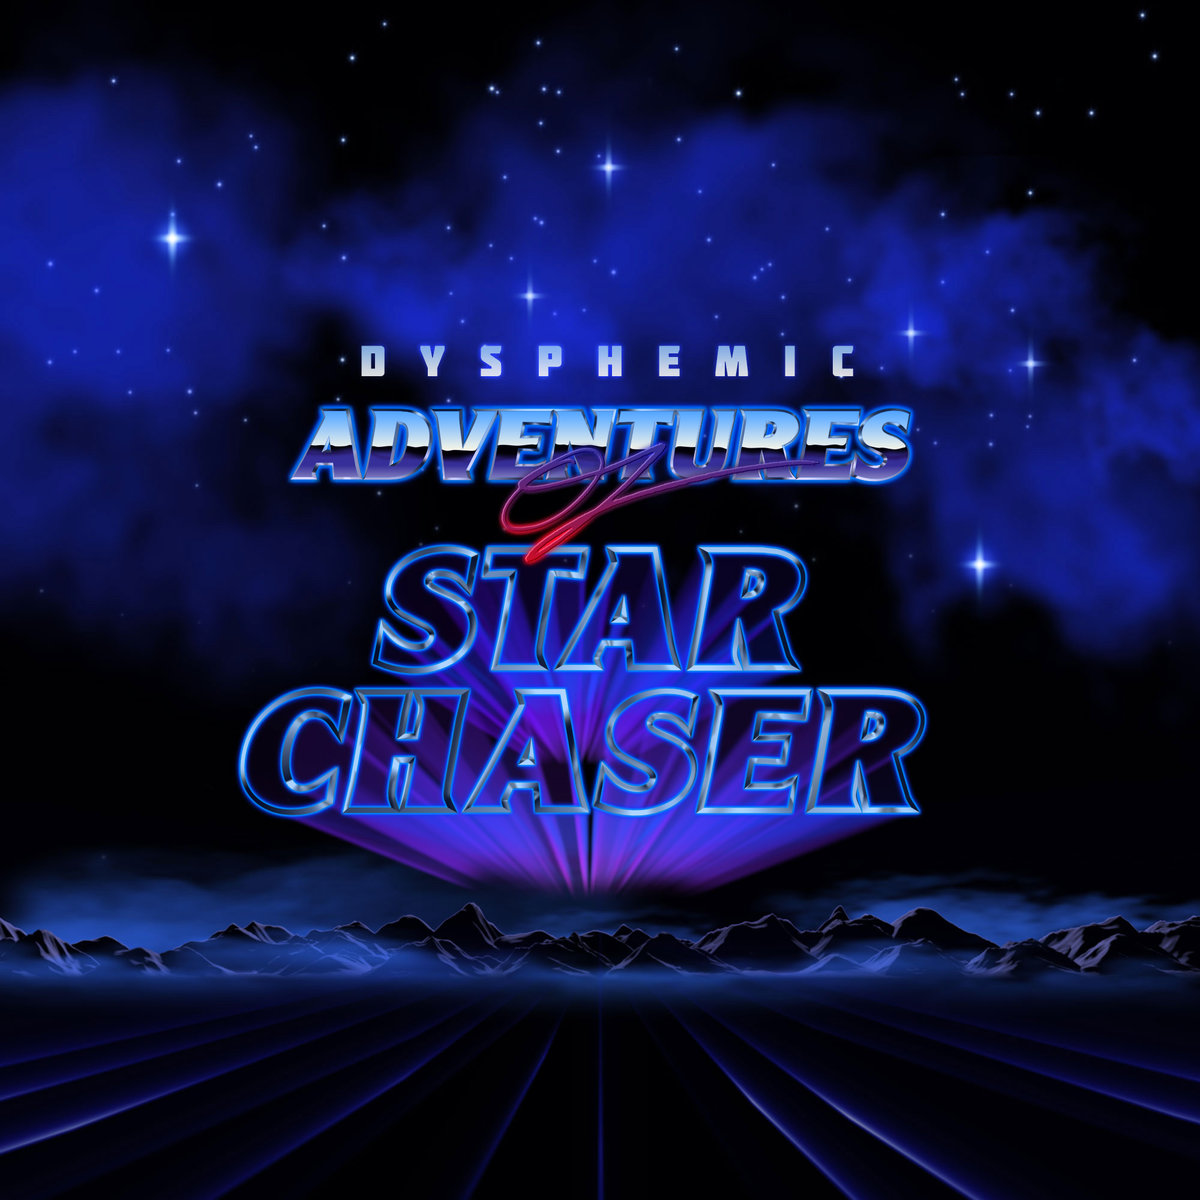 Dysphemic - Moon Cave Party (Tumble Remix) @ 'Adventures of Star Chaser' album (Austin)